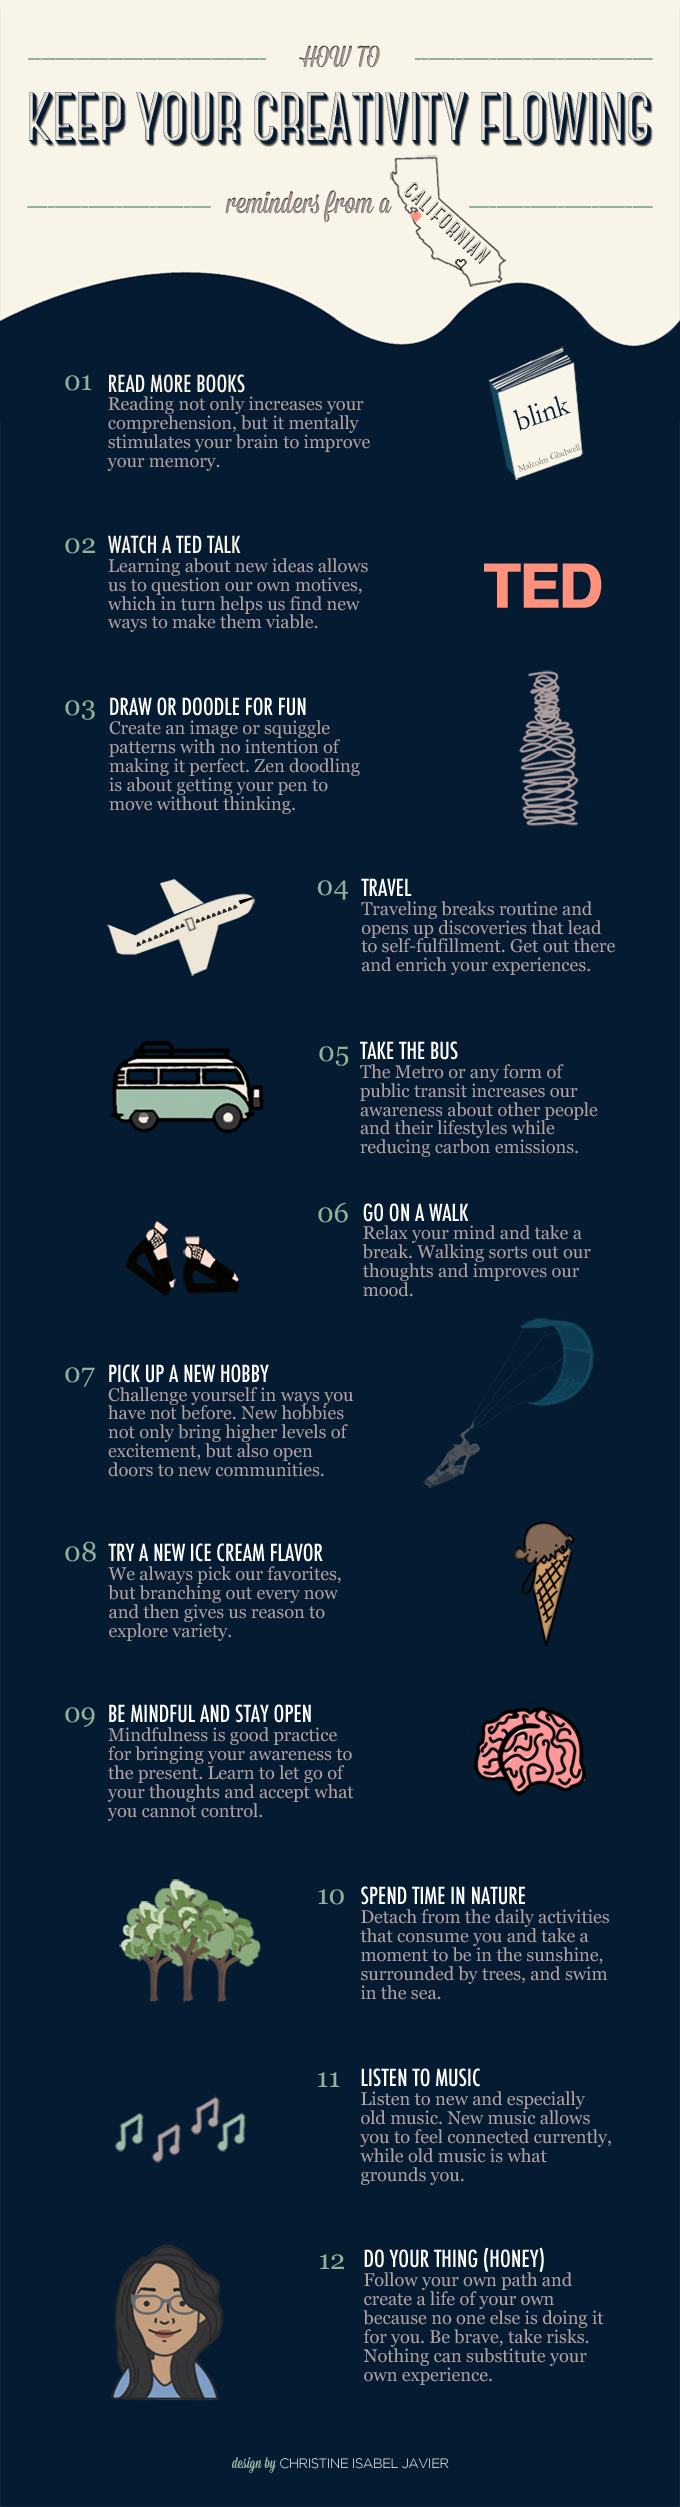 How To Keep Your Creativity Flowing: Reminders From A Californian [#Infographic]